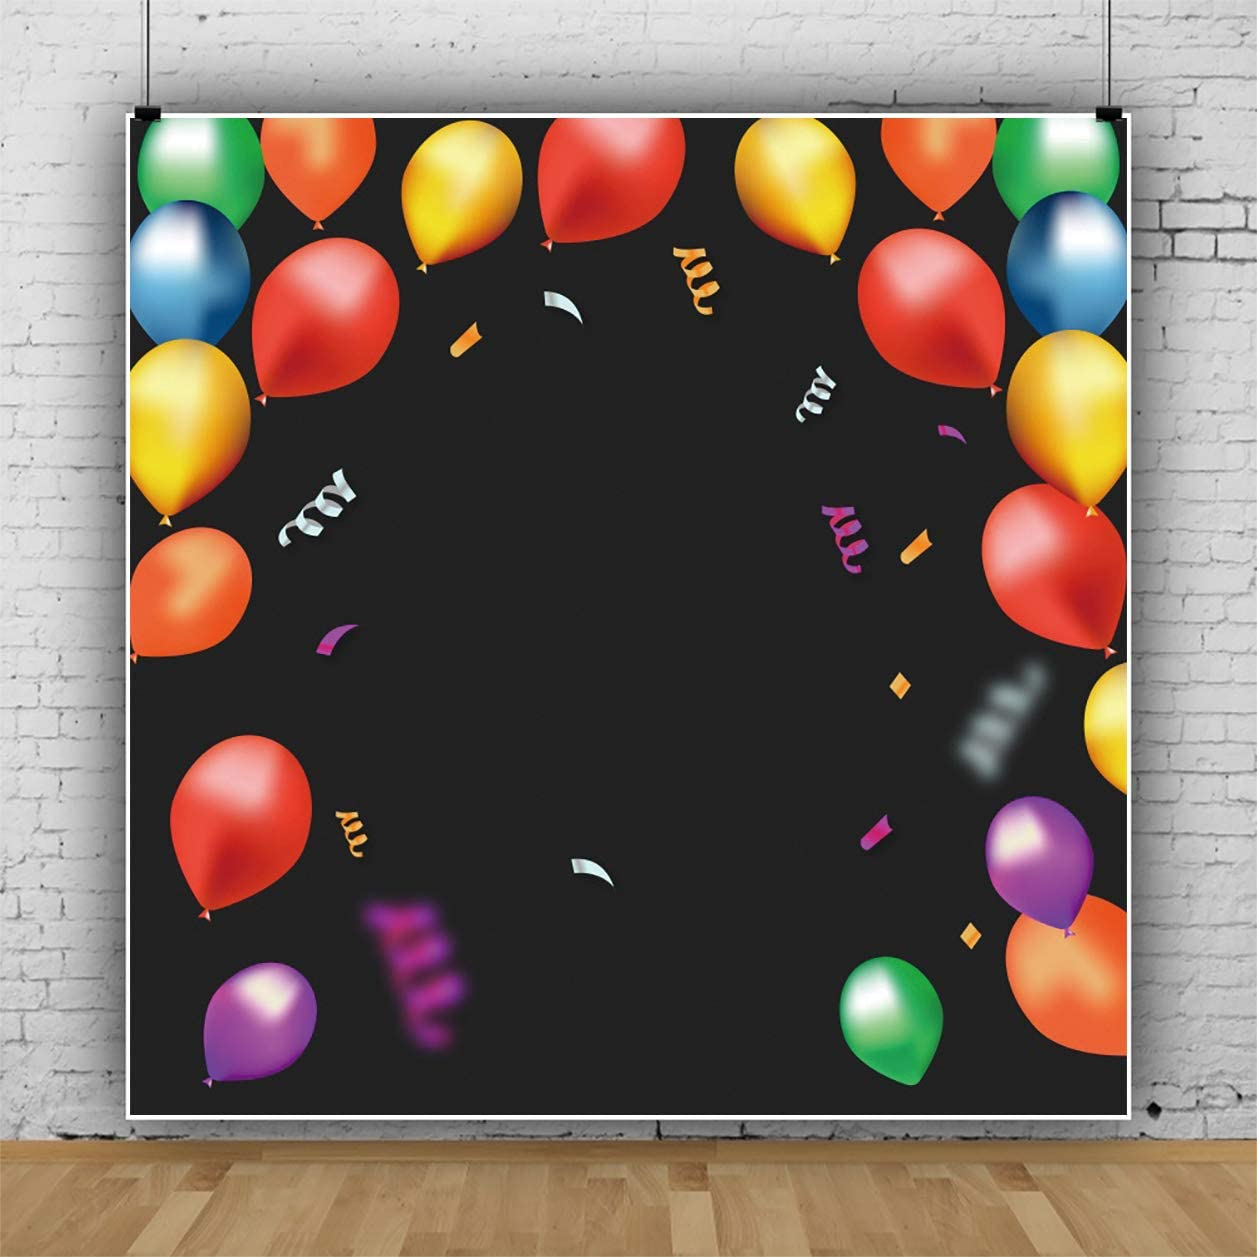 Yeele Colorful Balloons Photography Backdrop Lady Gentlemen Birthday Party Background 10x10ft Kids Adult Artistic Portrait Banner Room Decoration Photo Booth Photoshoot Props Wallpaper